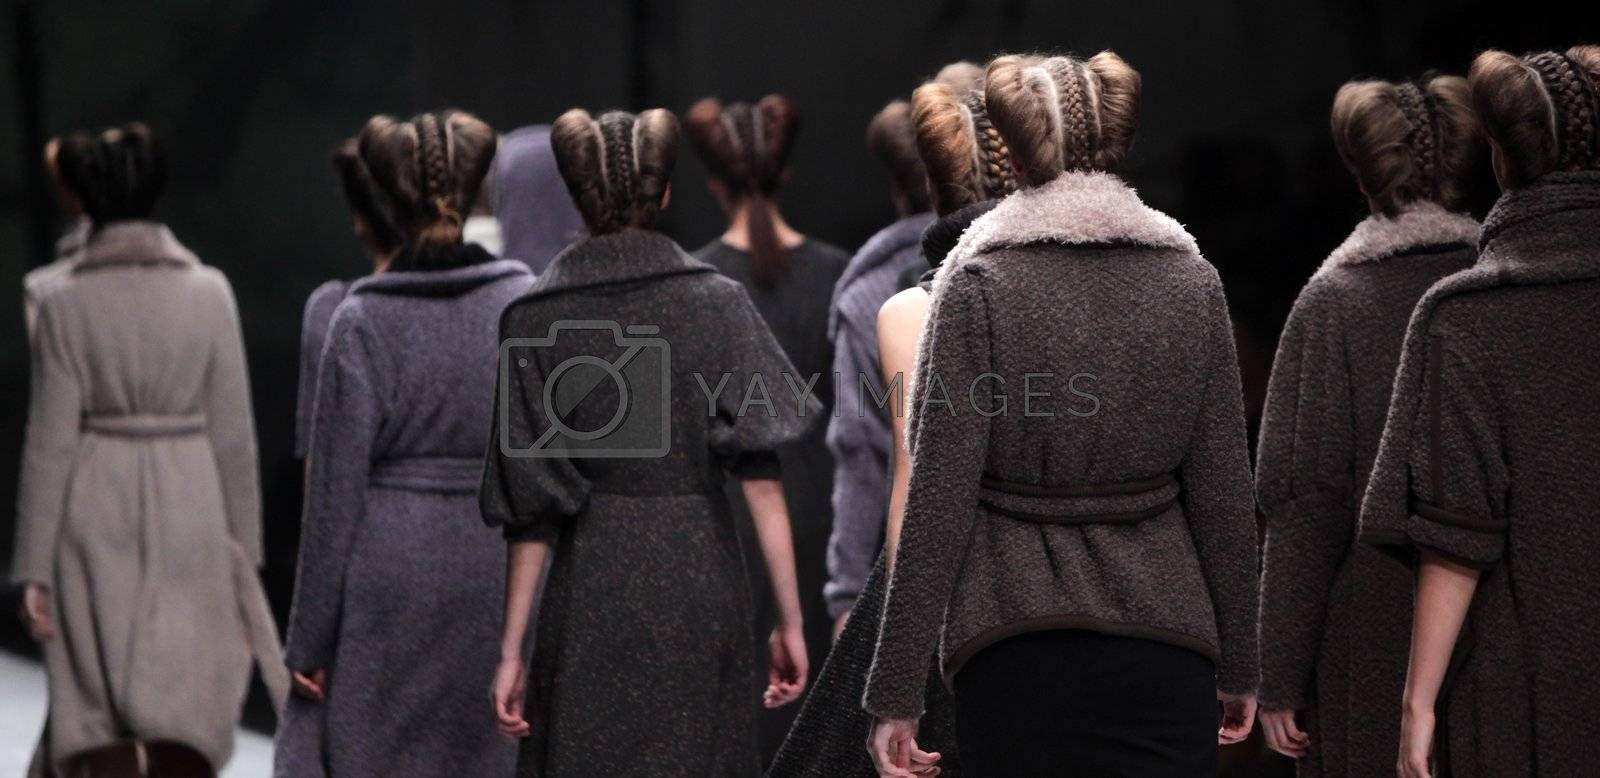 """ZAGREB, CROATIA - MARCH 16: Fashion model wears clothes made by Arena by Galas on """"Dove FASHION.HR"""" show on March 16, 2012 in Zagreb, Croatia."""